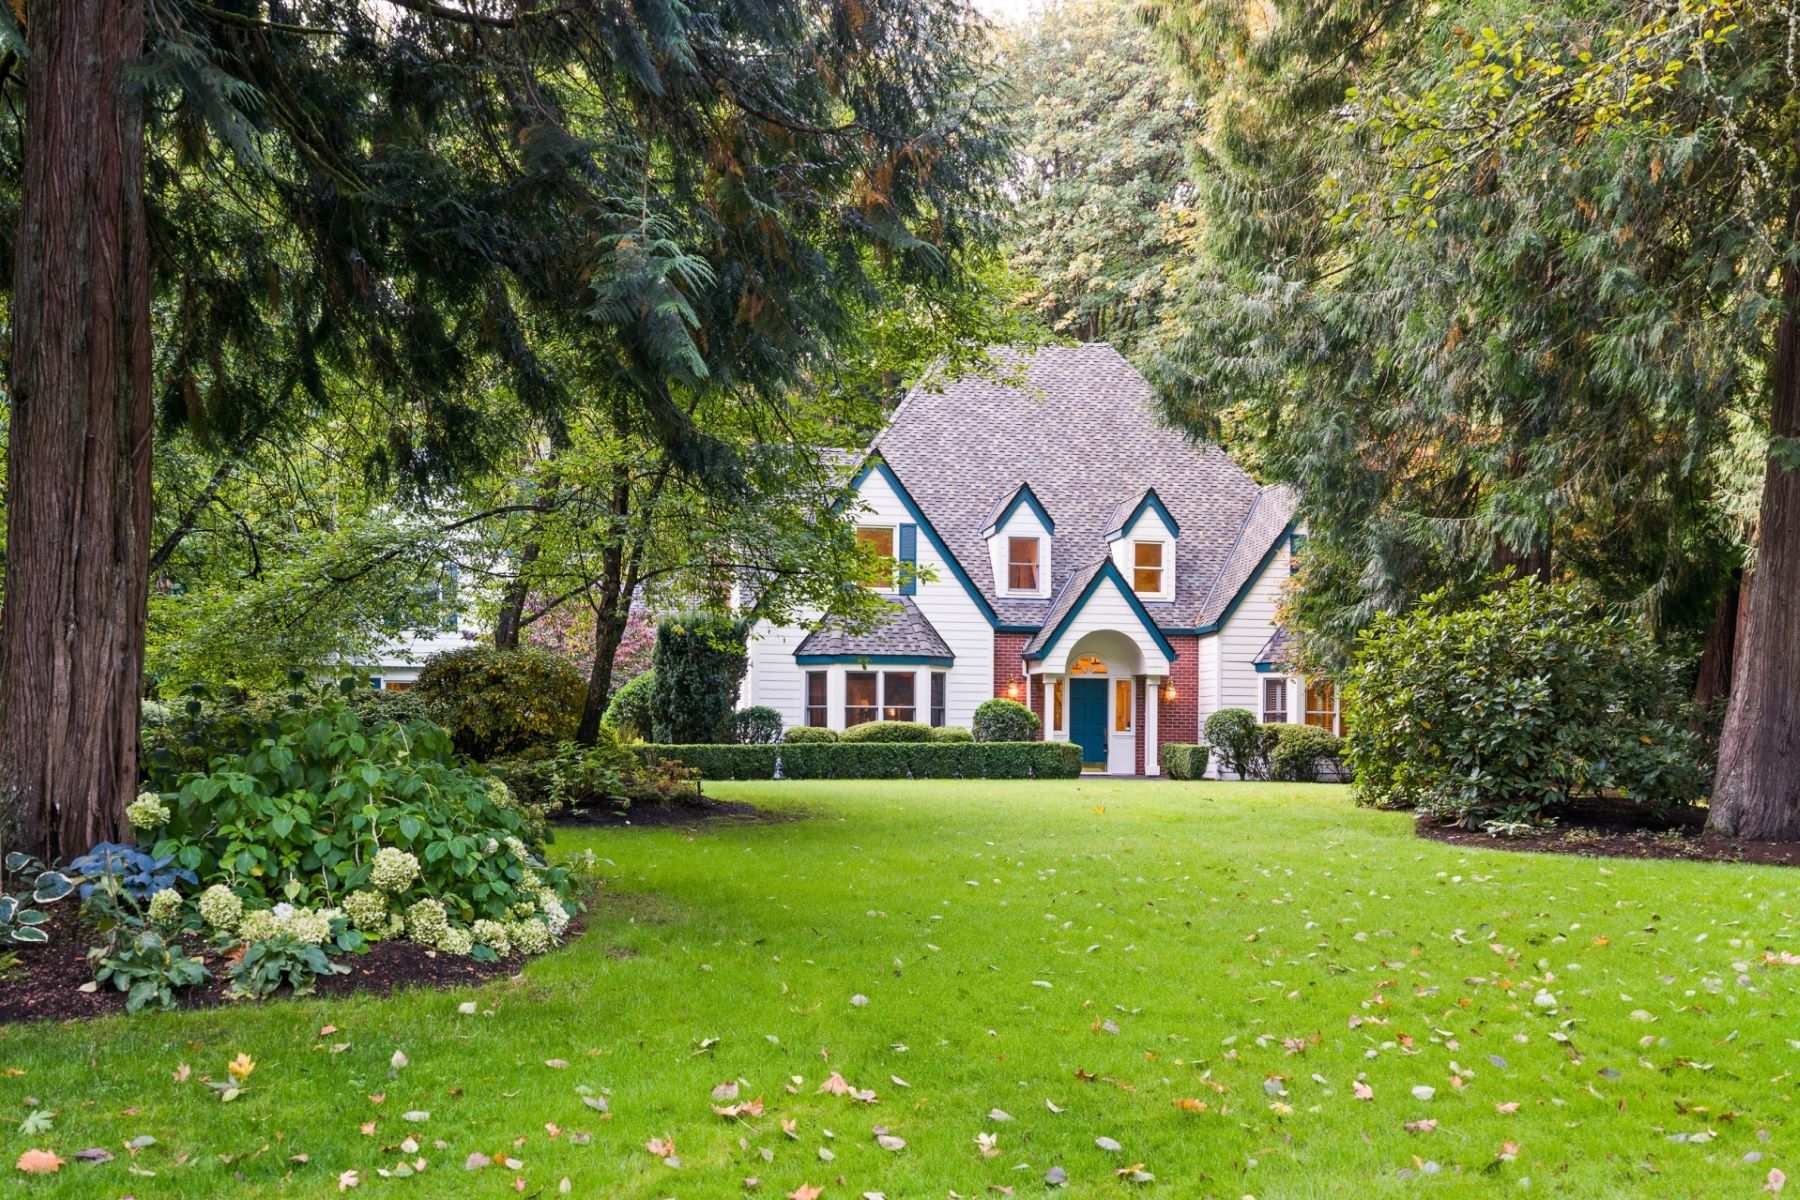 Other Residential Homes for Active at 602 SW ASHDOWN CIR West Linn, OR 97068 602 SW ASHDOWN CIR West Linn, Oregon 97068 United States